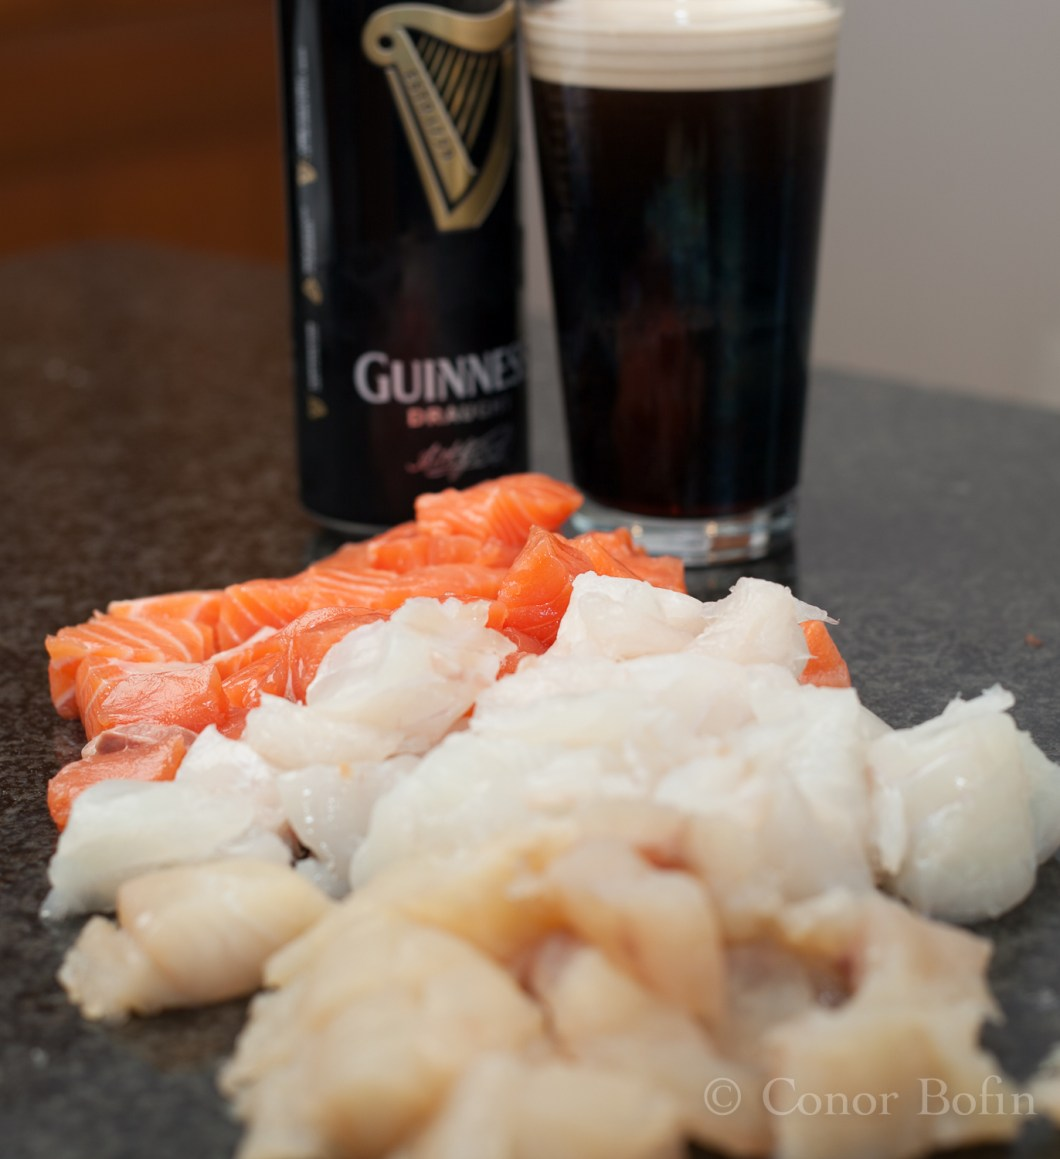 Chopped fish and Guinness